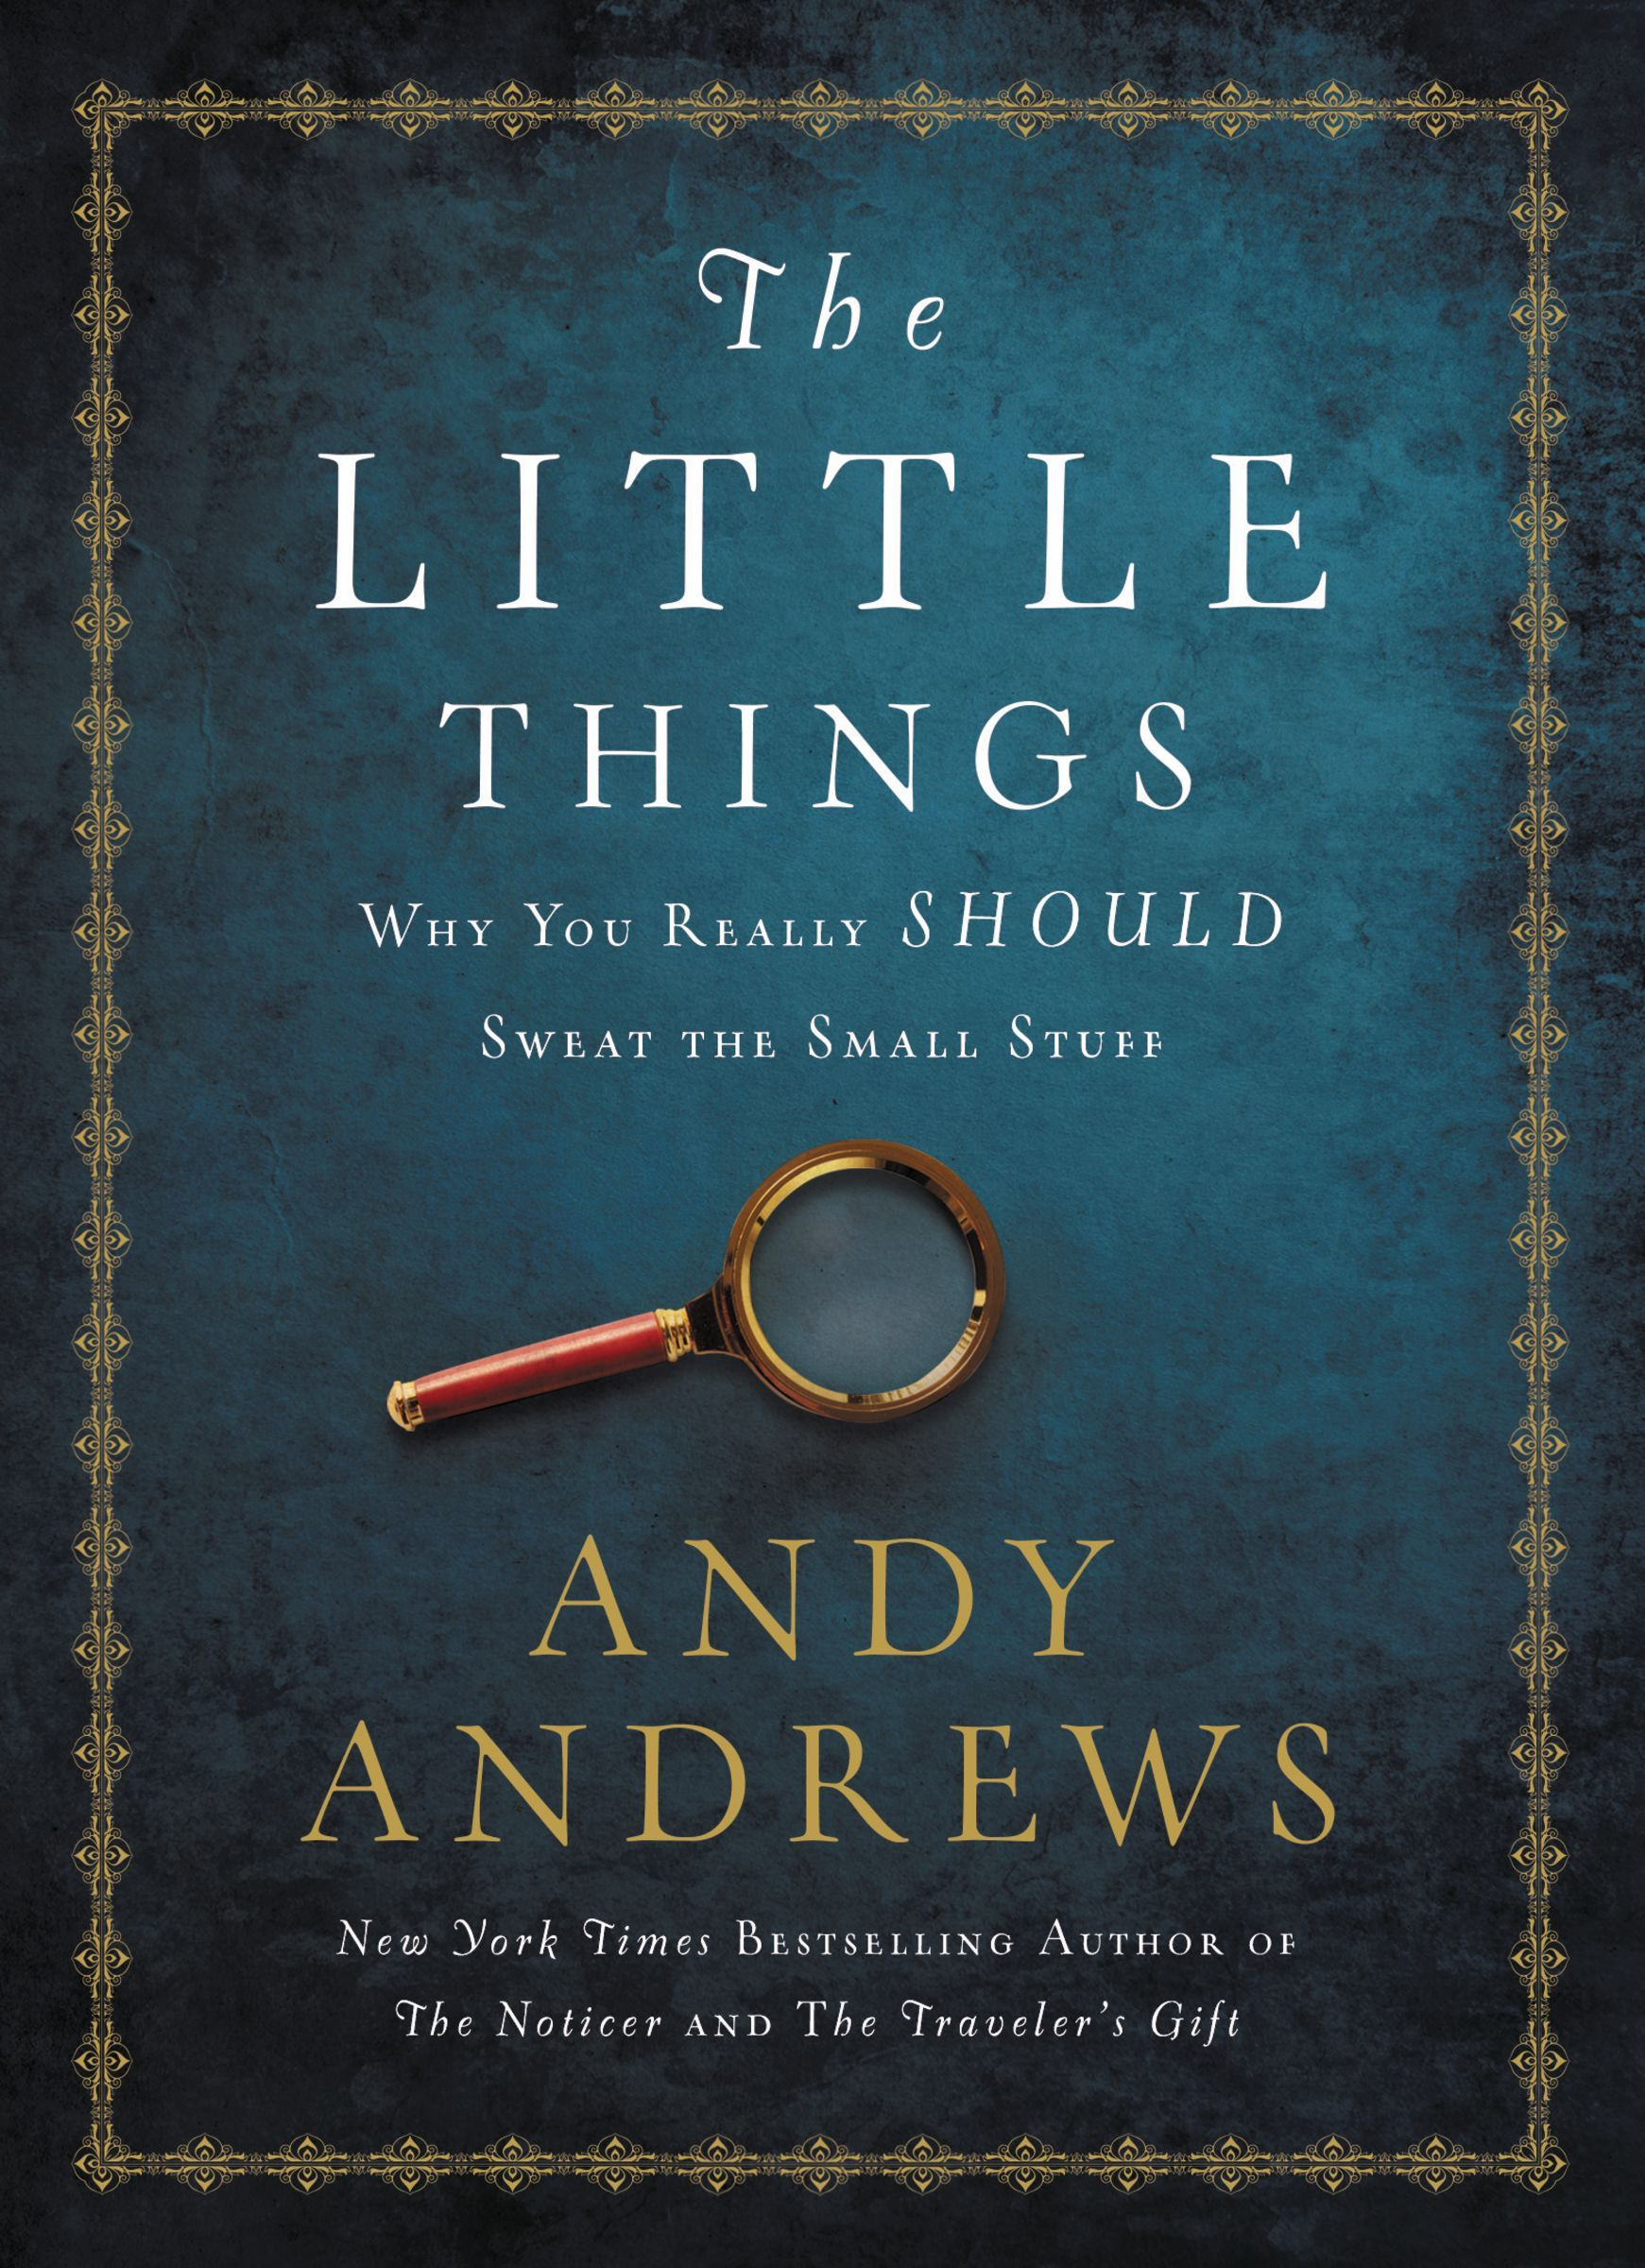 The Little Things Why You Really Should Sweat the Small Stuff by Andy Andrews (z-lib.org)